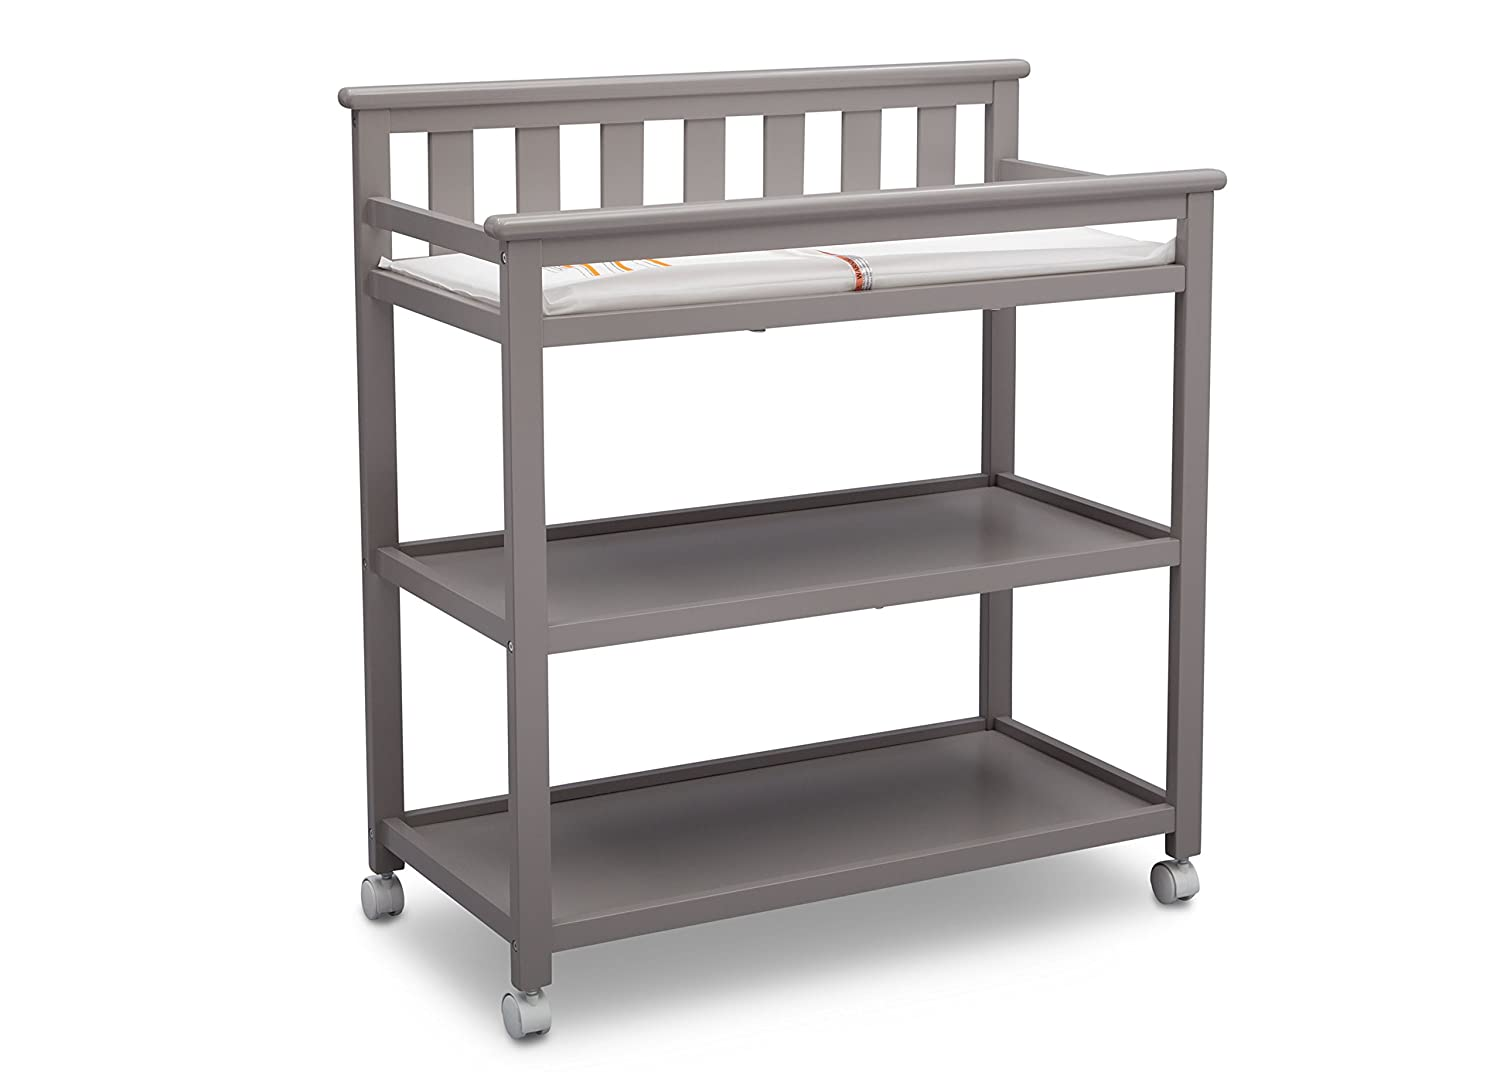 Amazon.com : Delta Children Flat Top Changing Table With Casters, Grey :  Baby